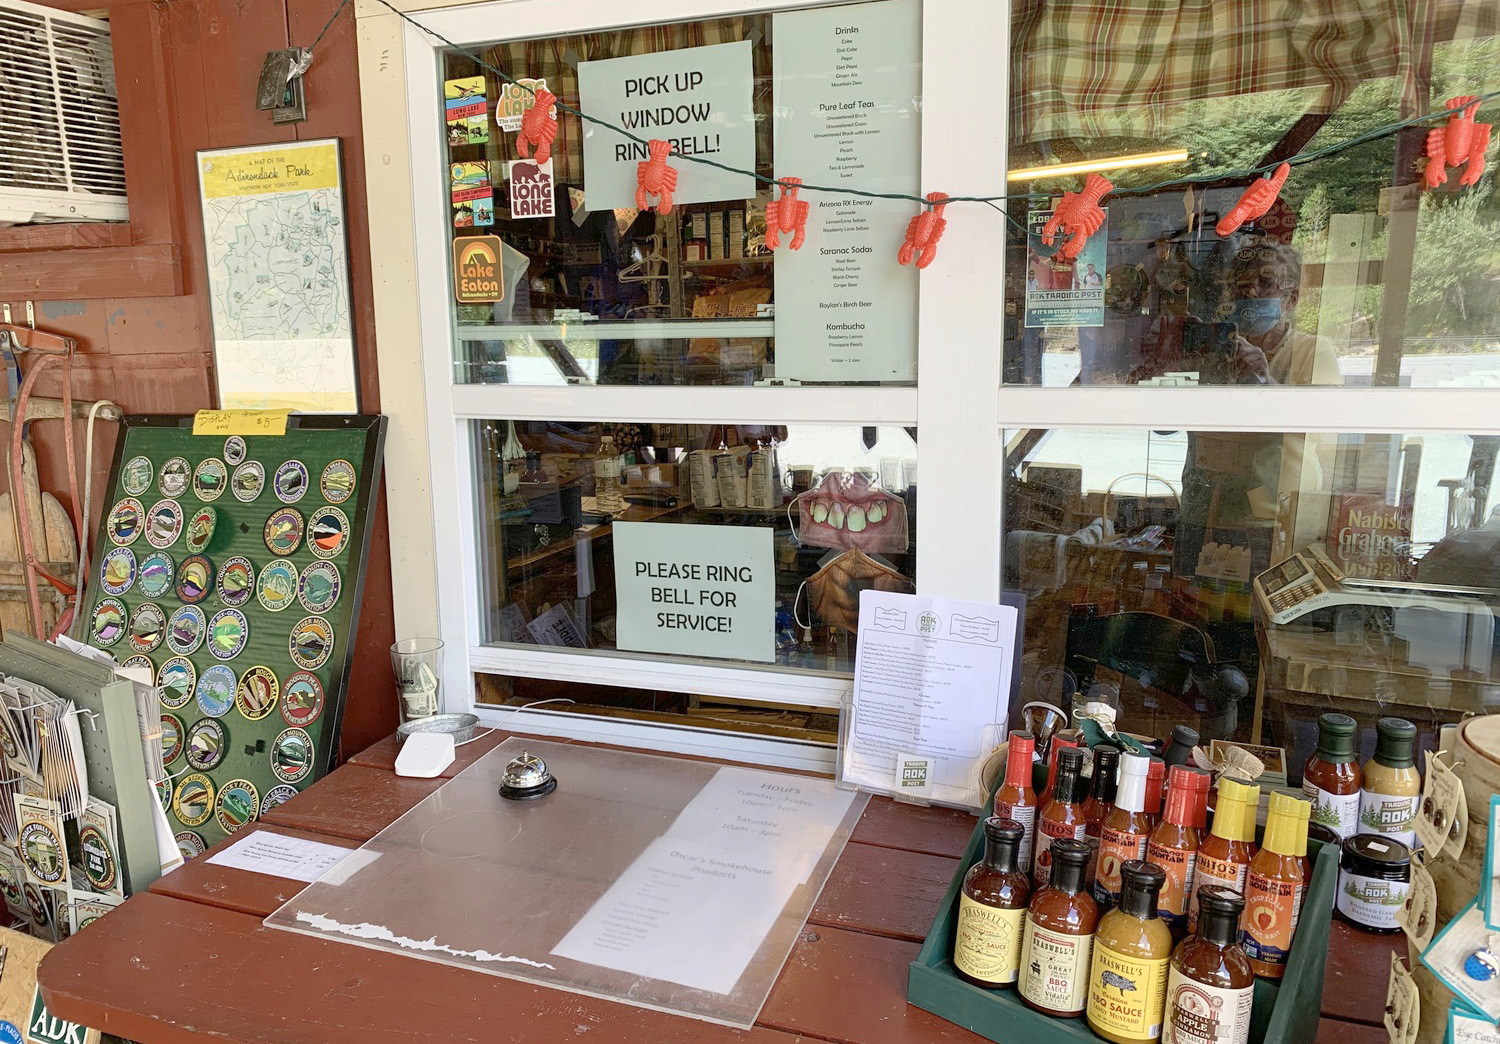 The pick-up window at the ADK Trading Post. Photo: courtesy Vickie Sandiford